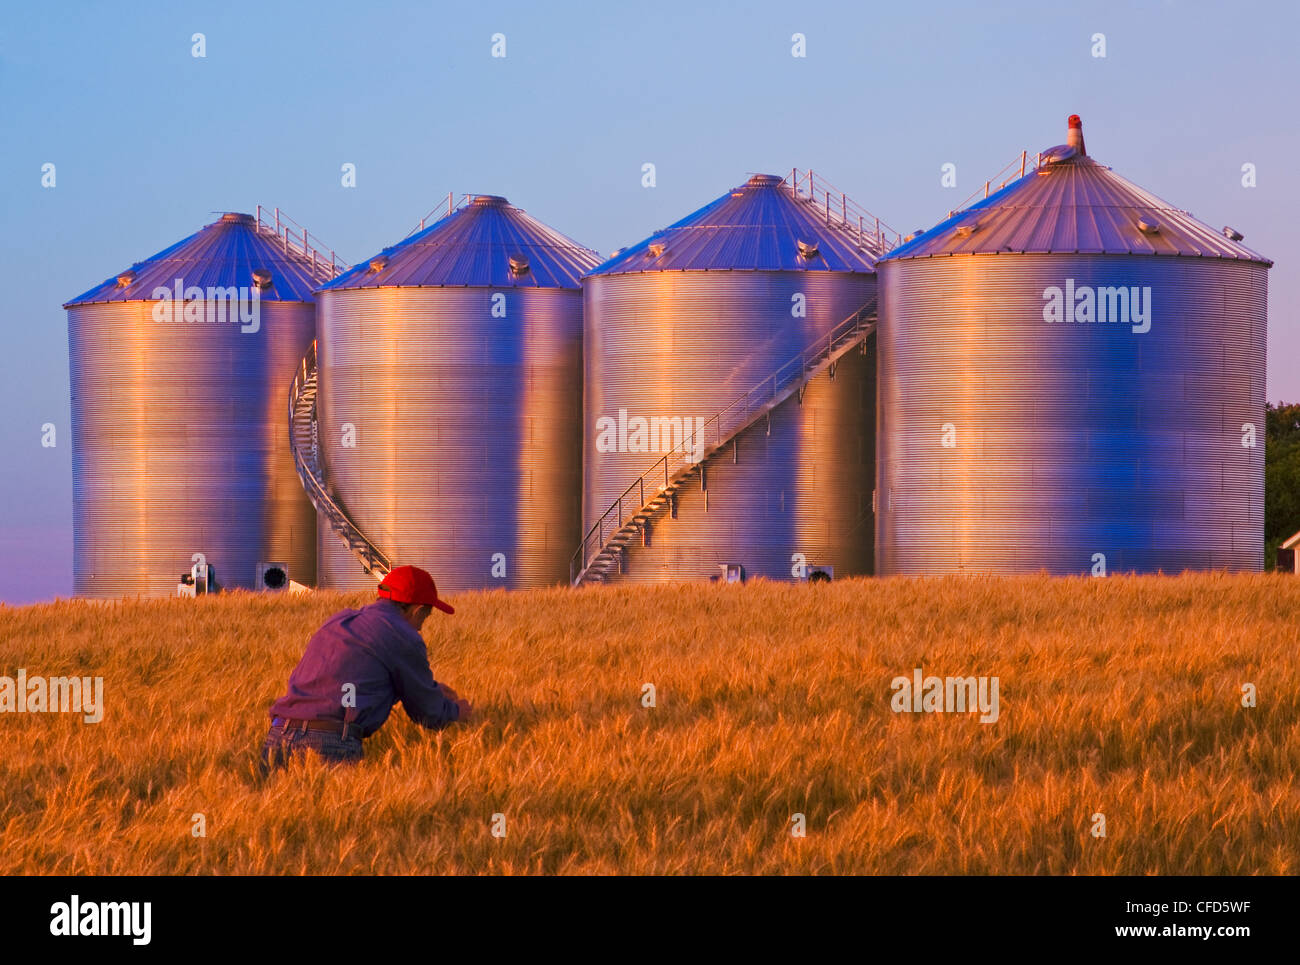 Man checking mature wheat in a field with new grain bins(silos) in the background, near Holland, Manitoba, Canada - Stock Image